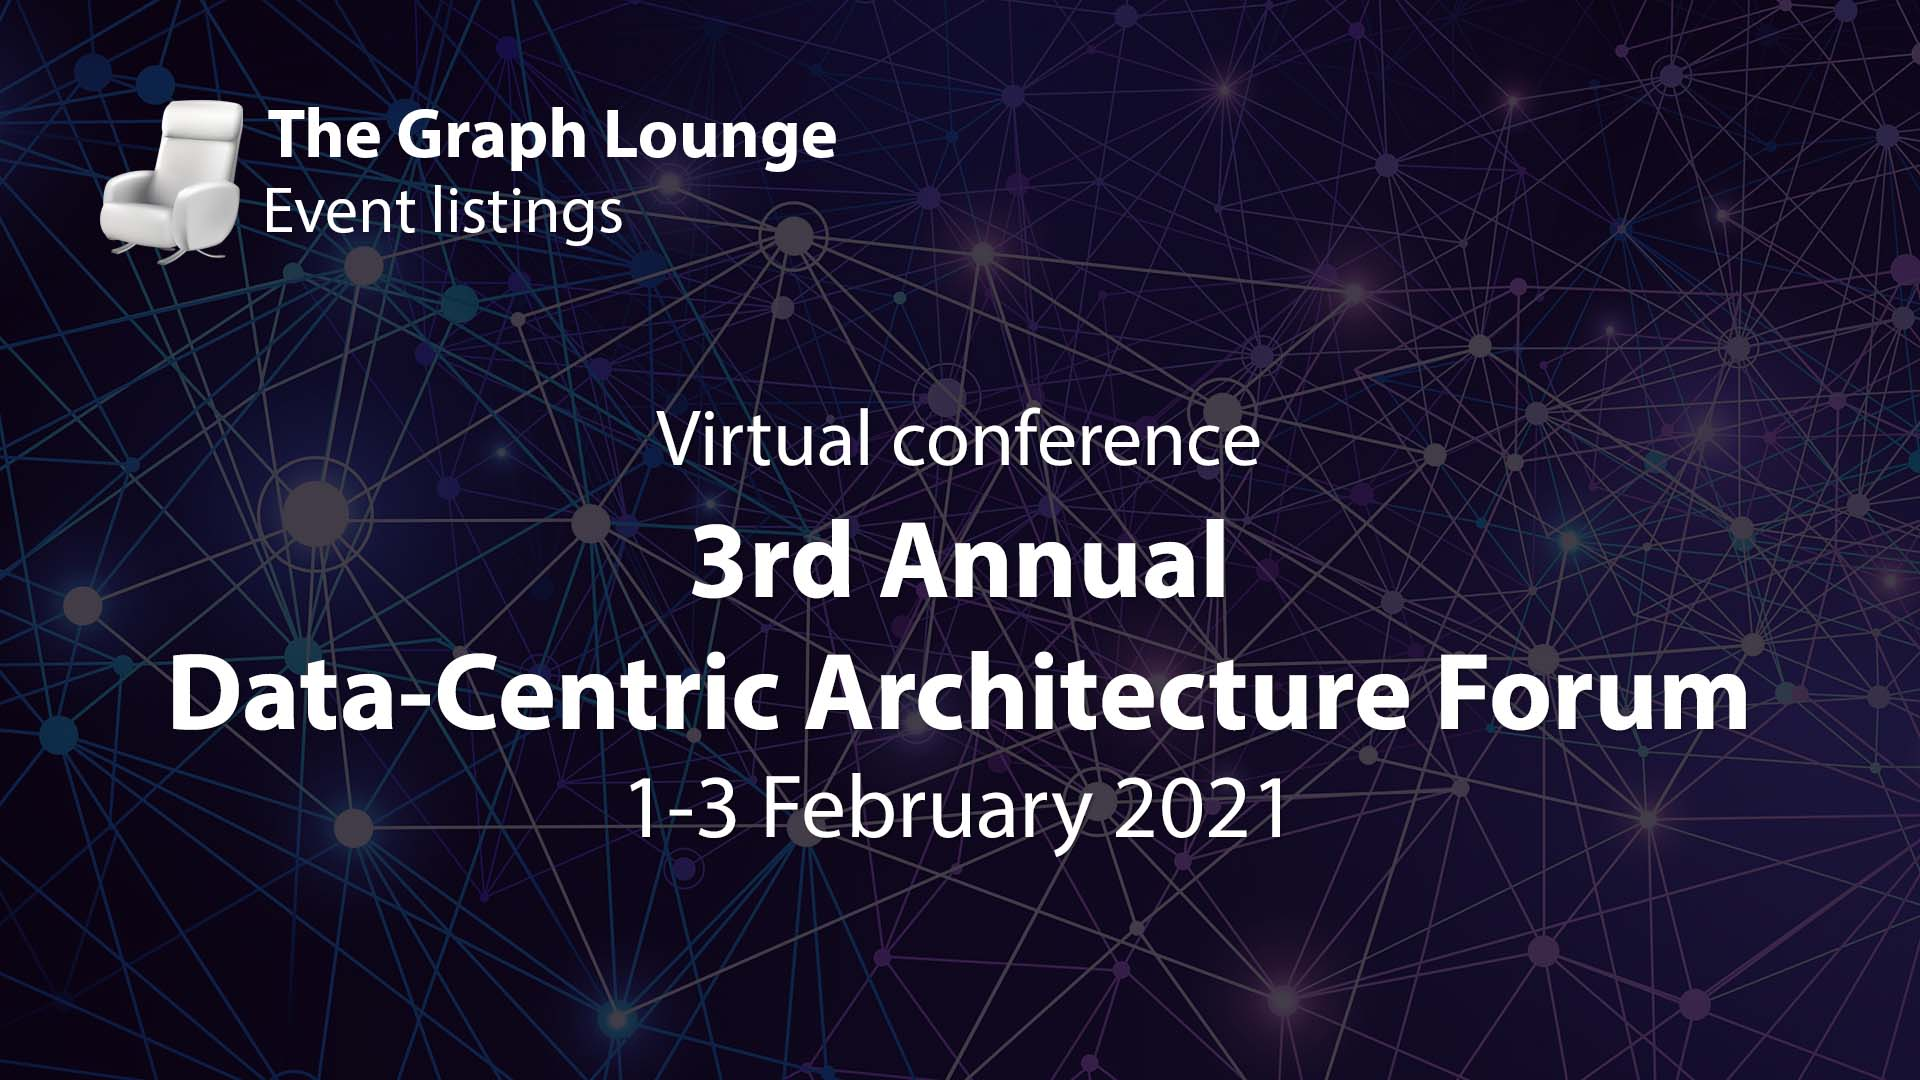 3rd Annual Data-Centric Architecture Forum